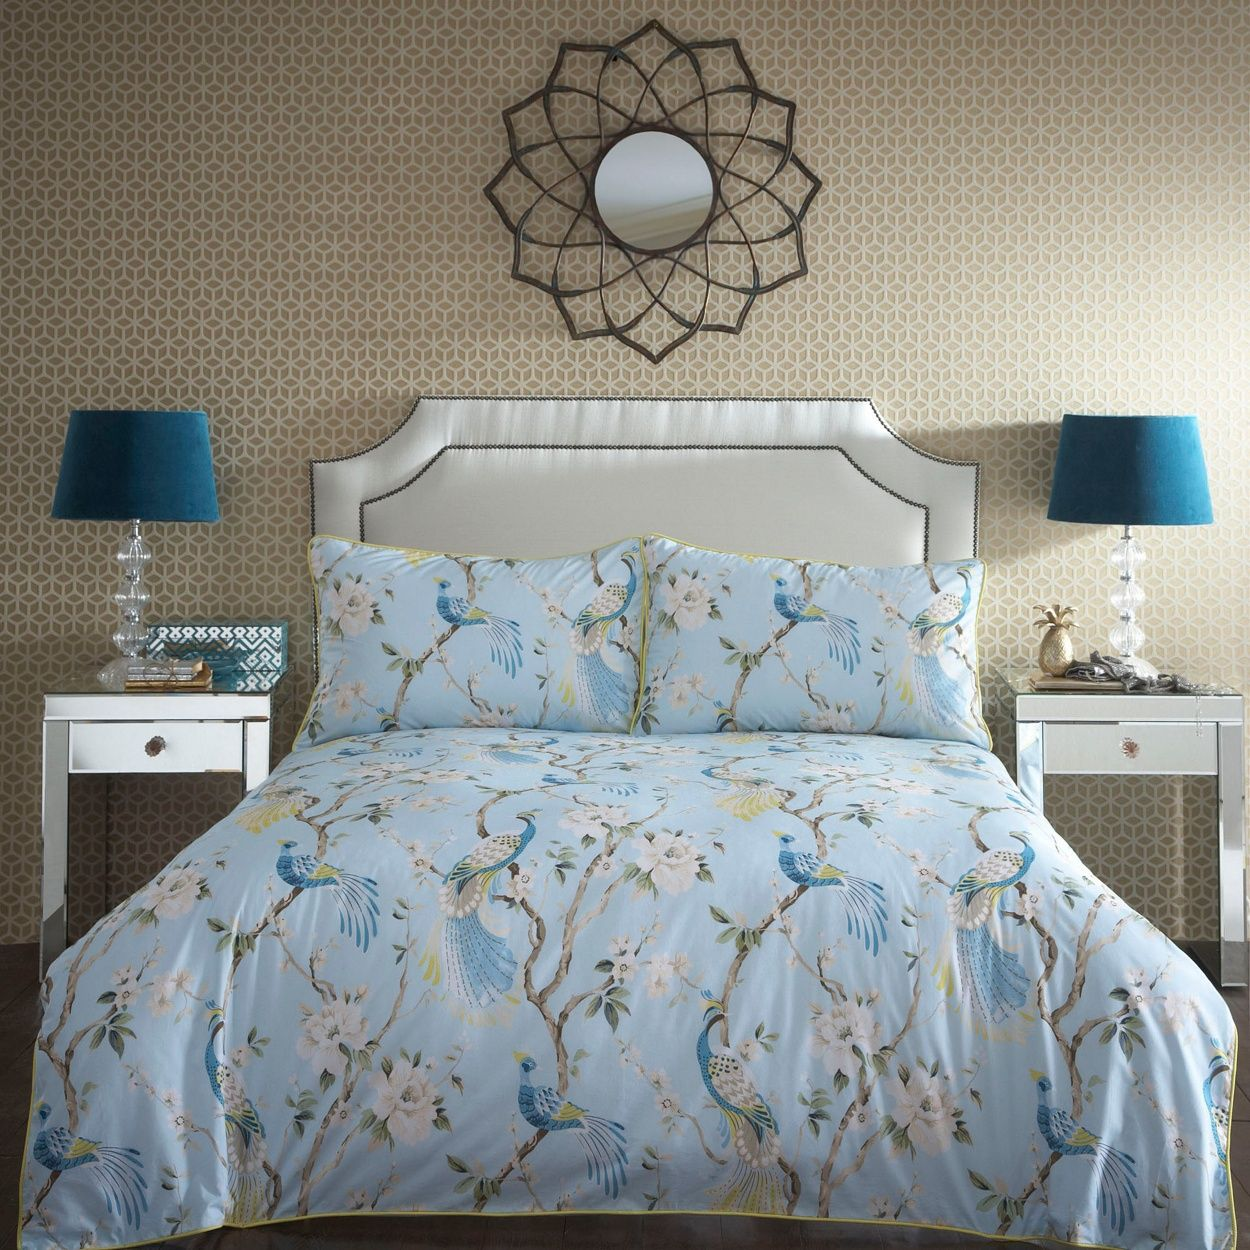 Home Collection Blue 39 Paradise 39 Floral Bird Pattern Bedding Set At Home Style